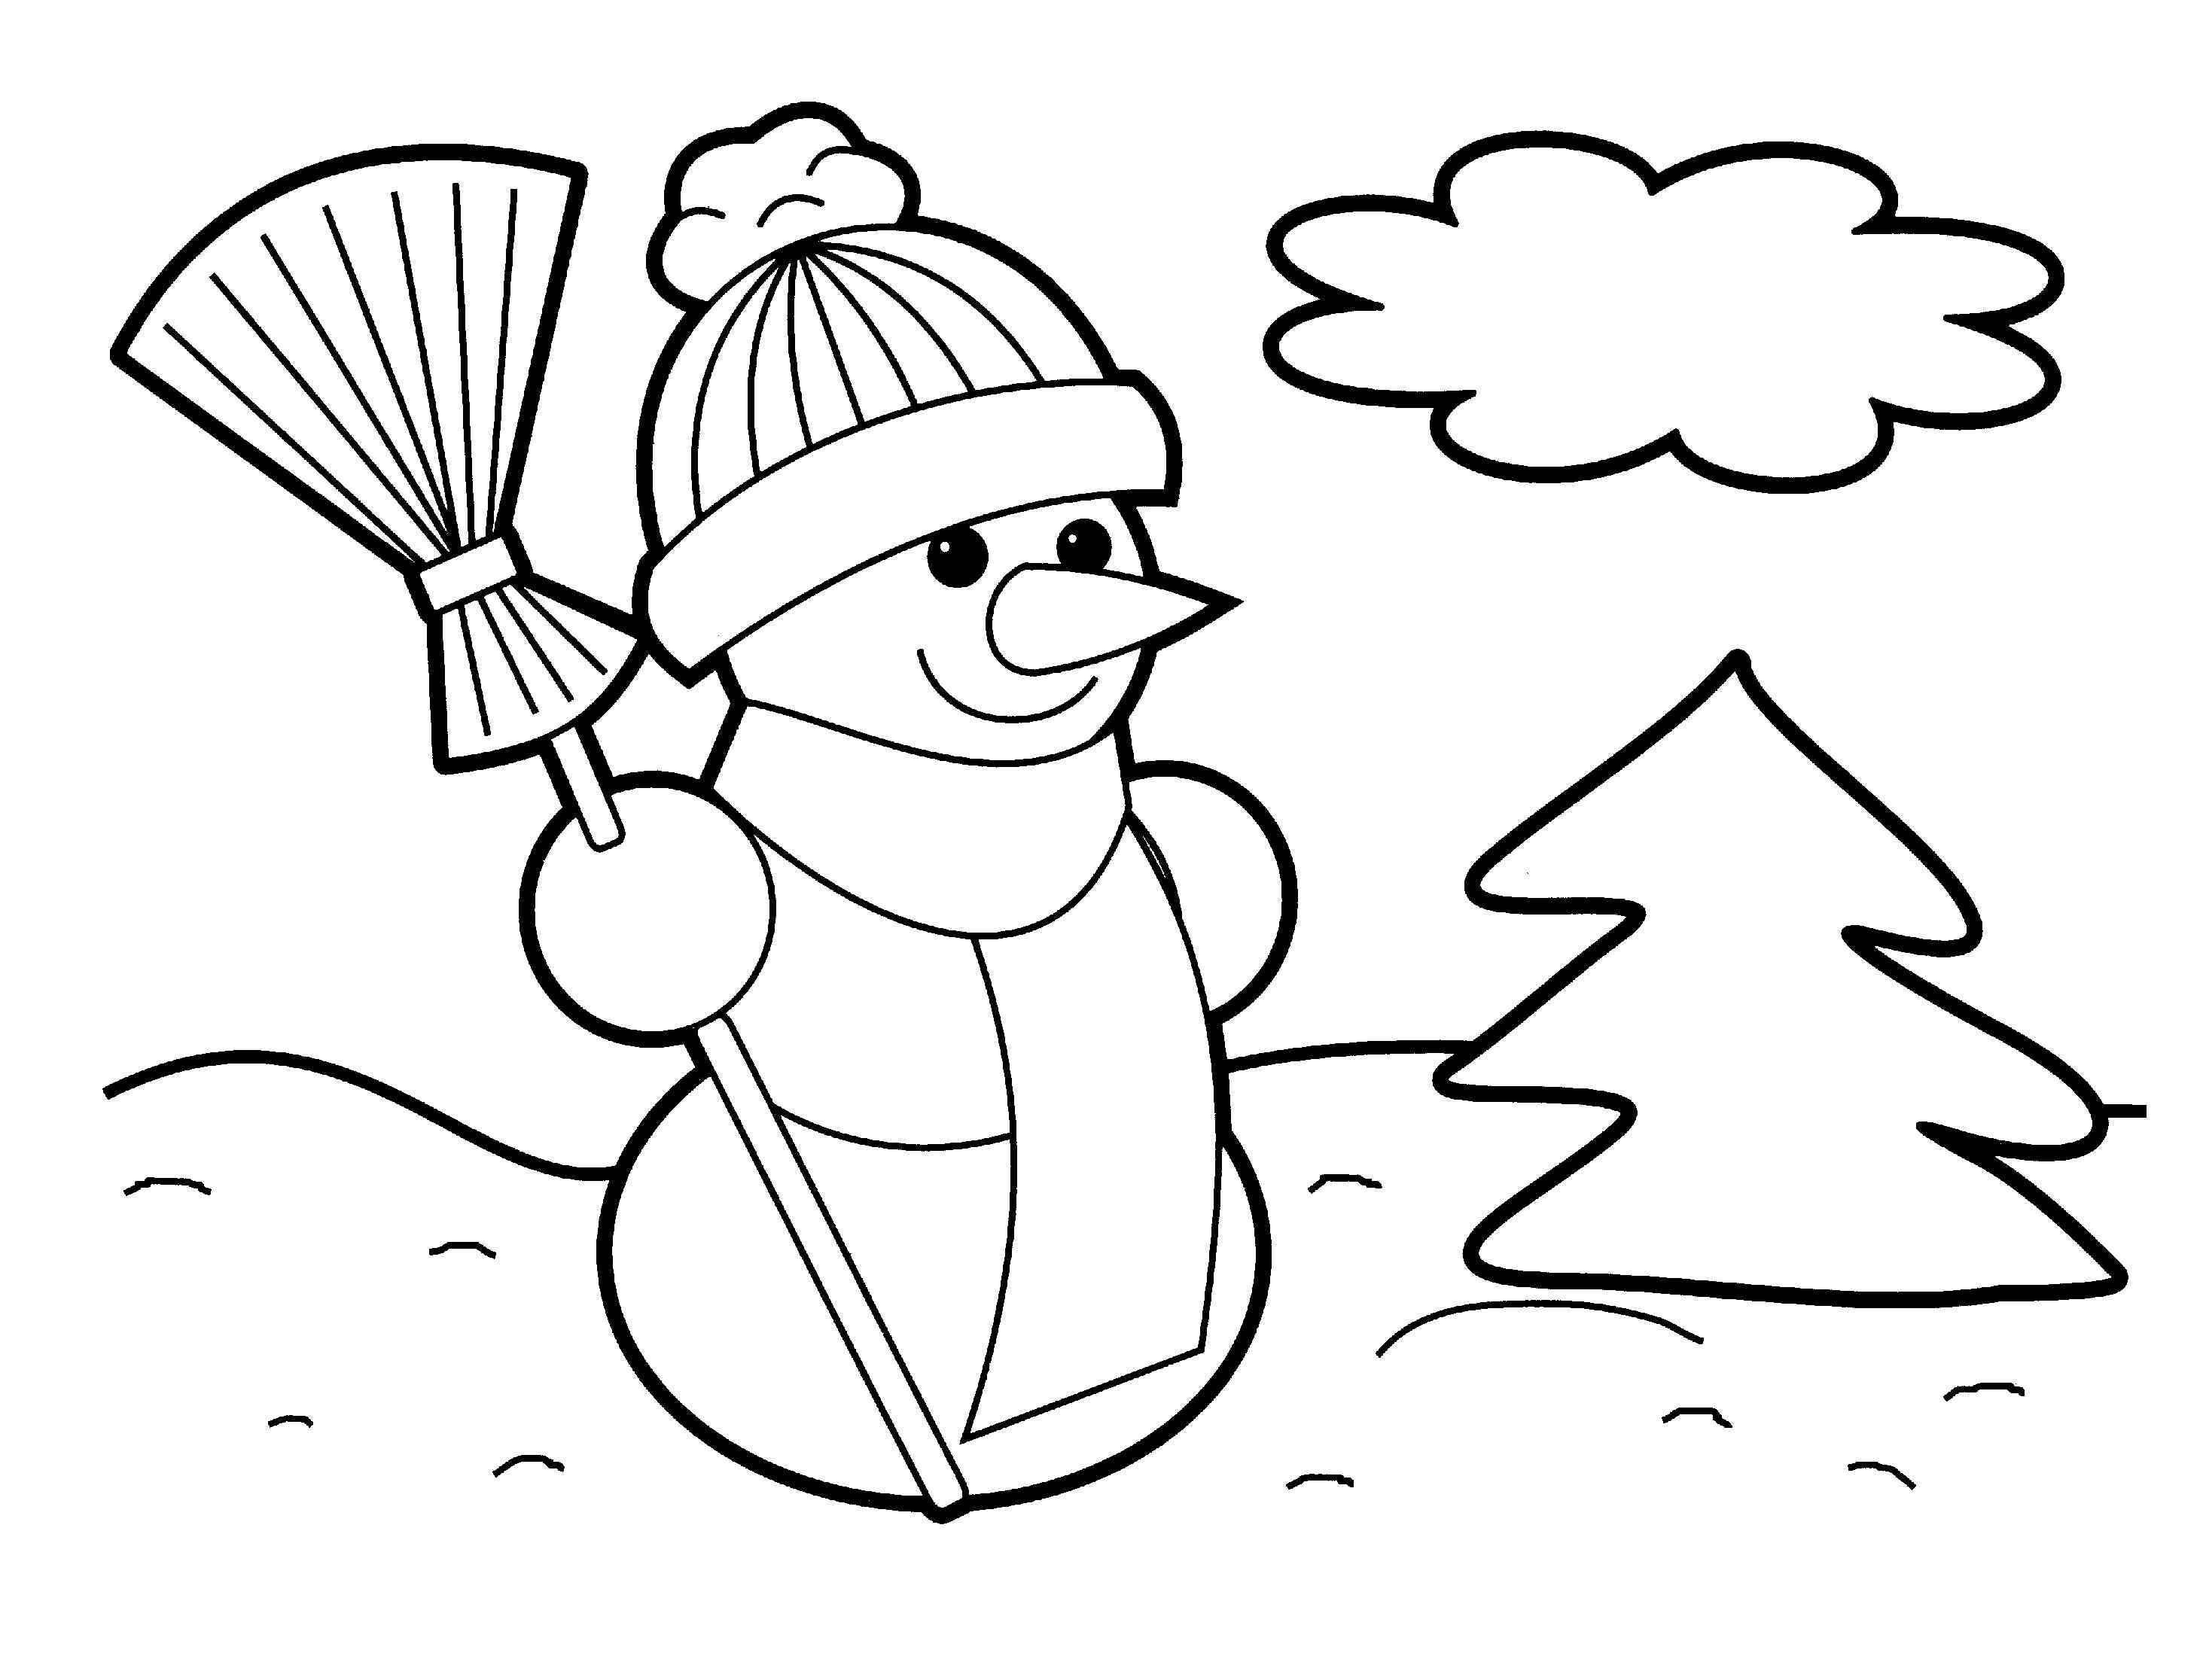 30 preschool coloring pages for kids